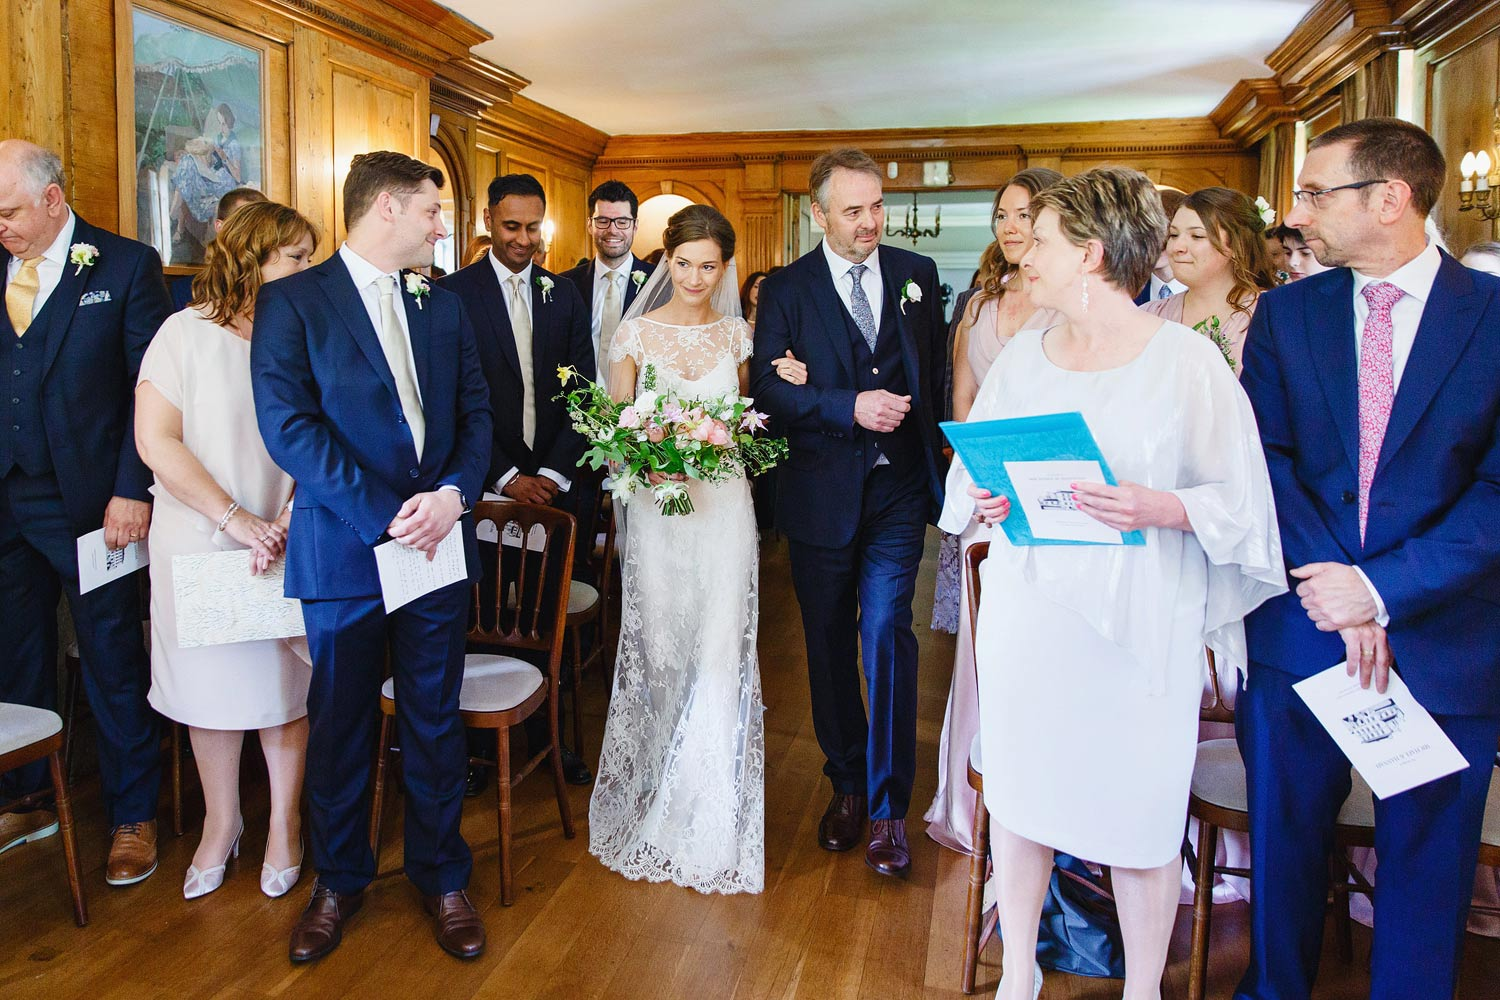 BRIDE AND FATHER OF THE BRIDE at Burgh House Museum - London wedding photographer